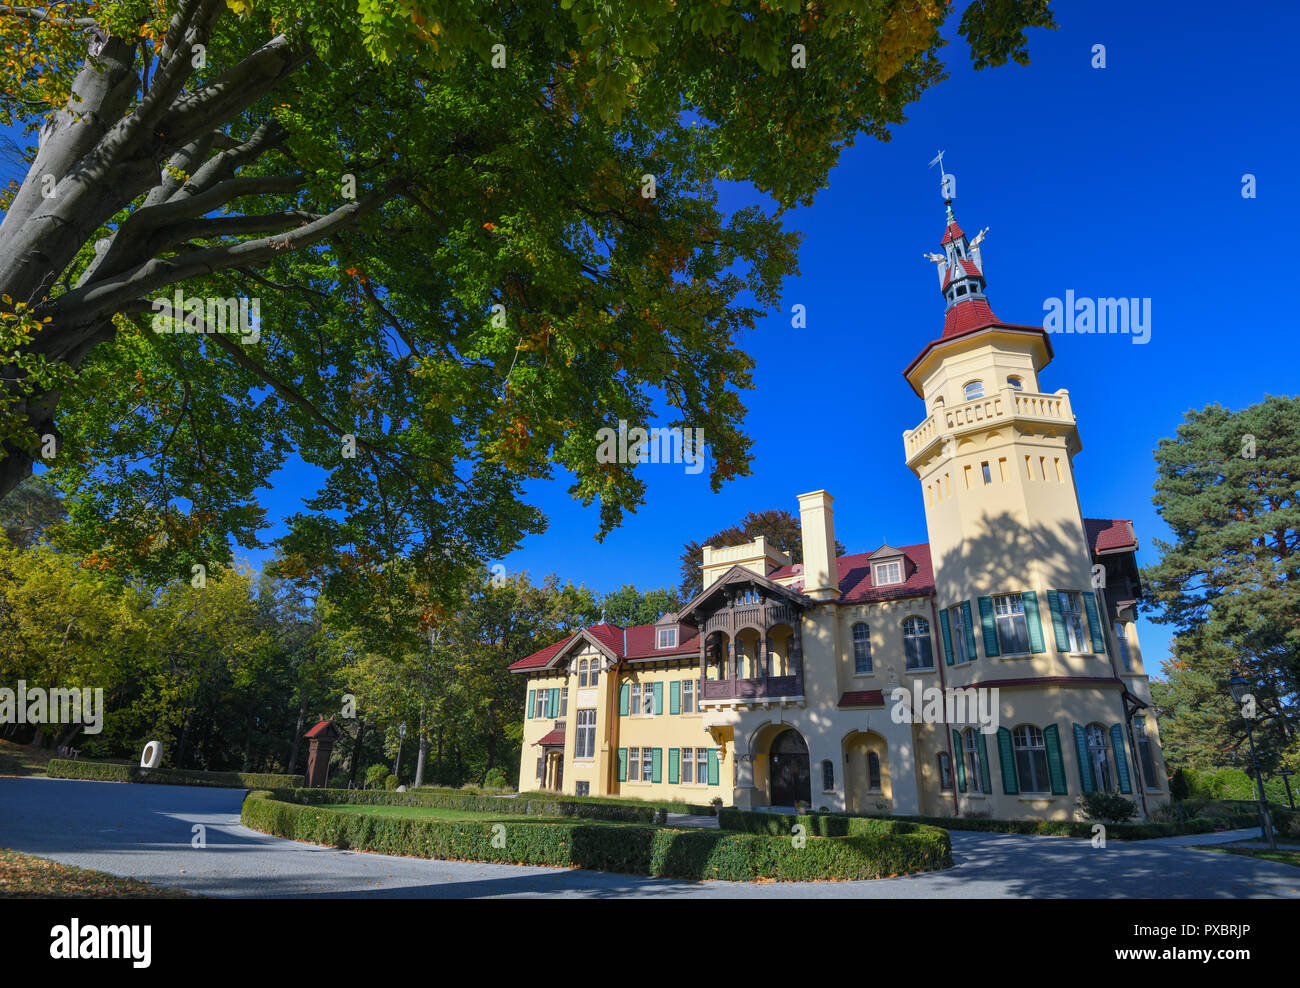 Storkow, Germany. 11th Oct, 2018. The castle Hubertushöhe by the entrepreneur and artist Rainer Opolka by the company Zweibrüder Kunst- und Kultur GmbH. Rainer Opolka wants to develop the area around Hubertushöhe Castle into an art and literature park. (to dpa-KORR 'From elitist castle hotel to art and literature park for all' from 21.10.2018) Credit: Patrick Pleul/ZB/dpa/Alamy Live News - Stock Image